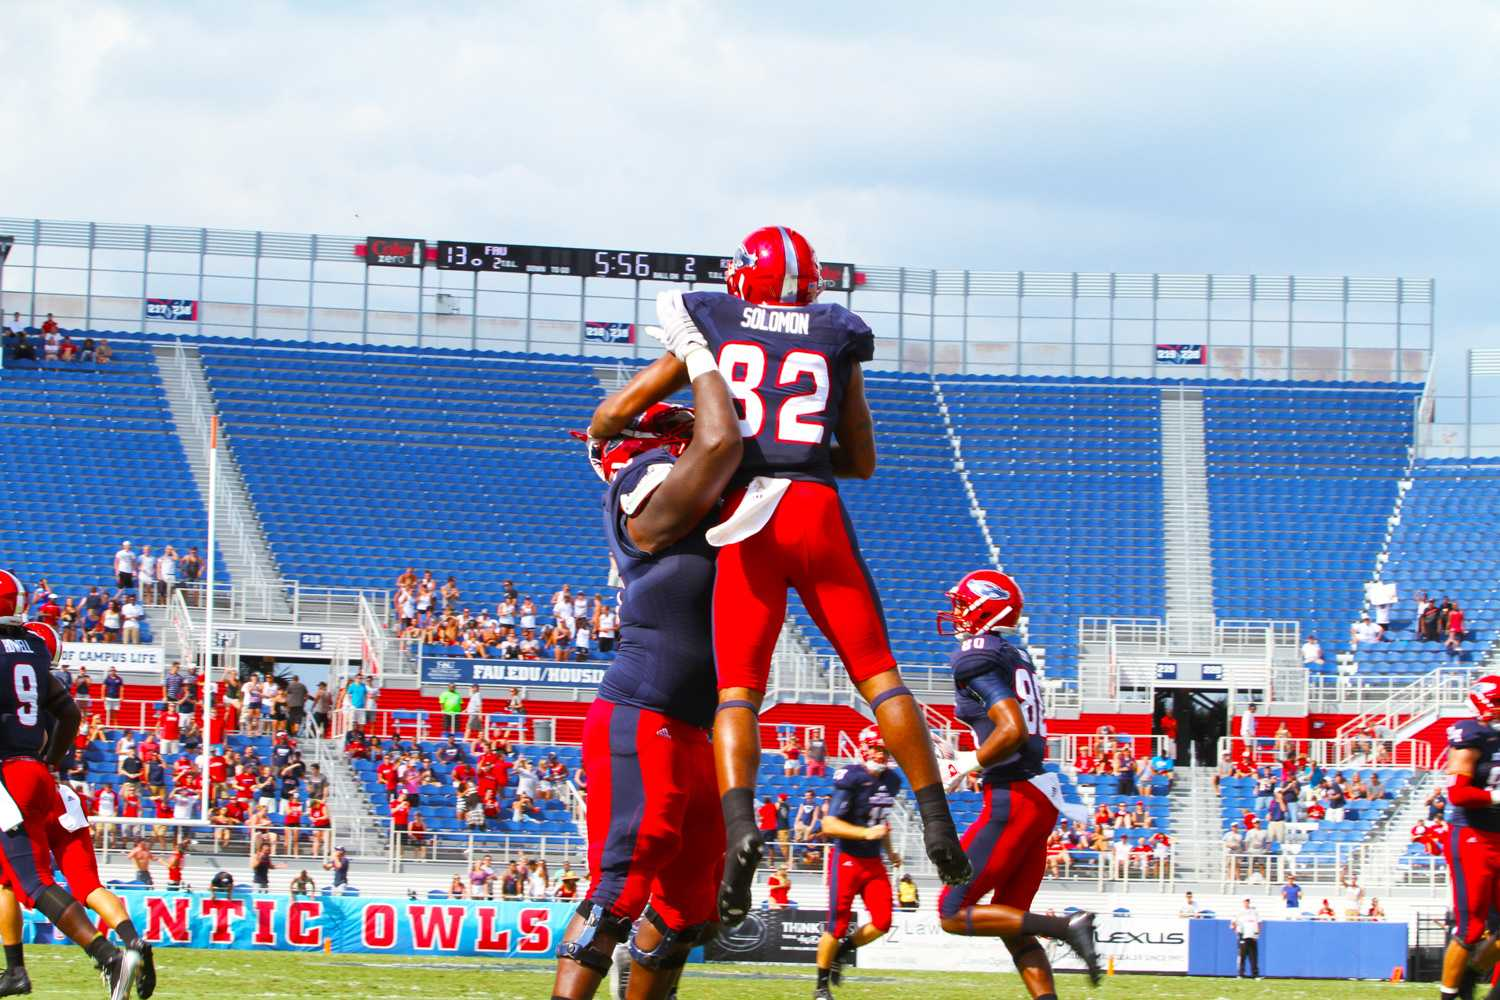 Celebration awaits Kamrin Solomon (82) after a momentous touchdown. Jessica Wilerson | Contributing Photographer